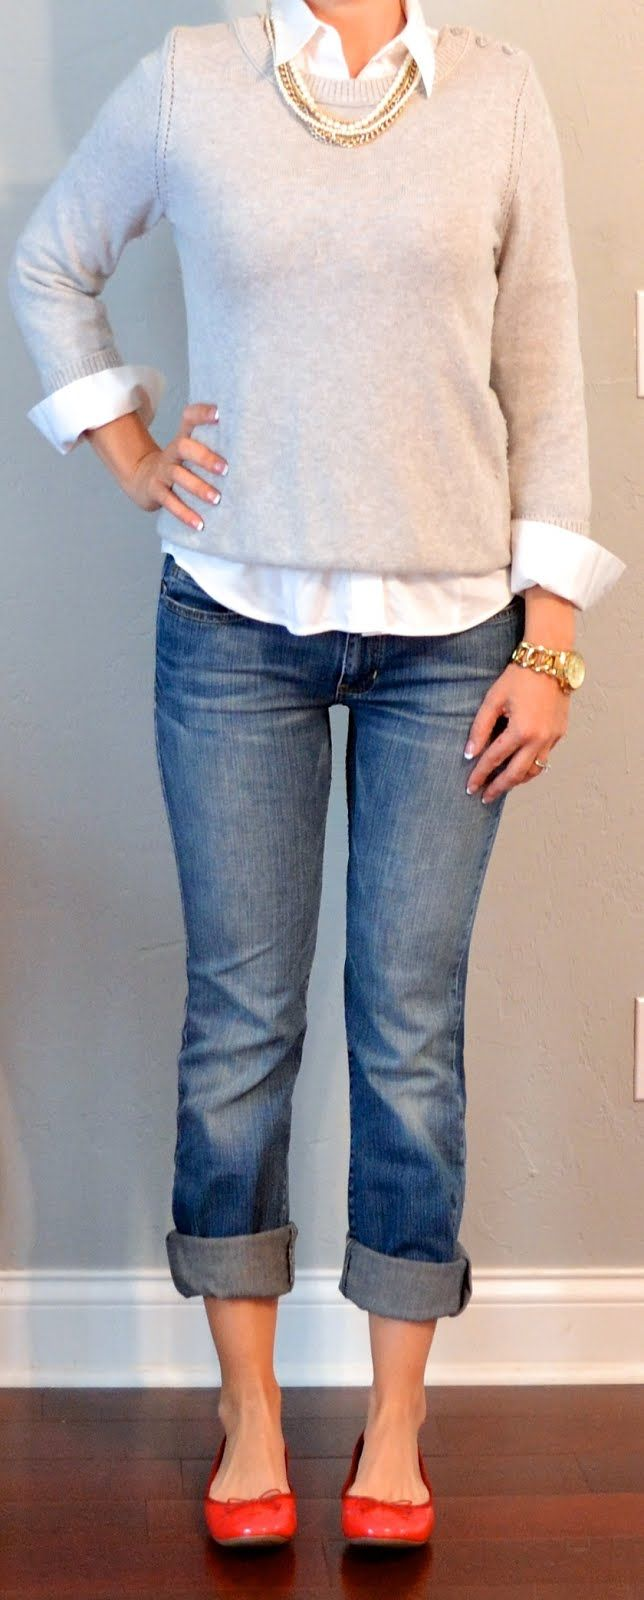 white button down shirt, grey sweater, boyfriend jeans, red ballet flats